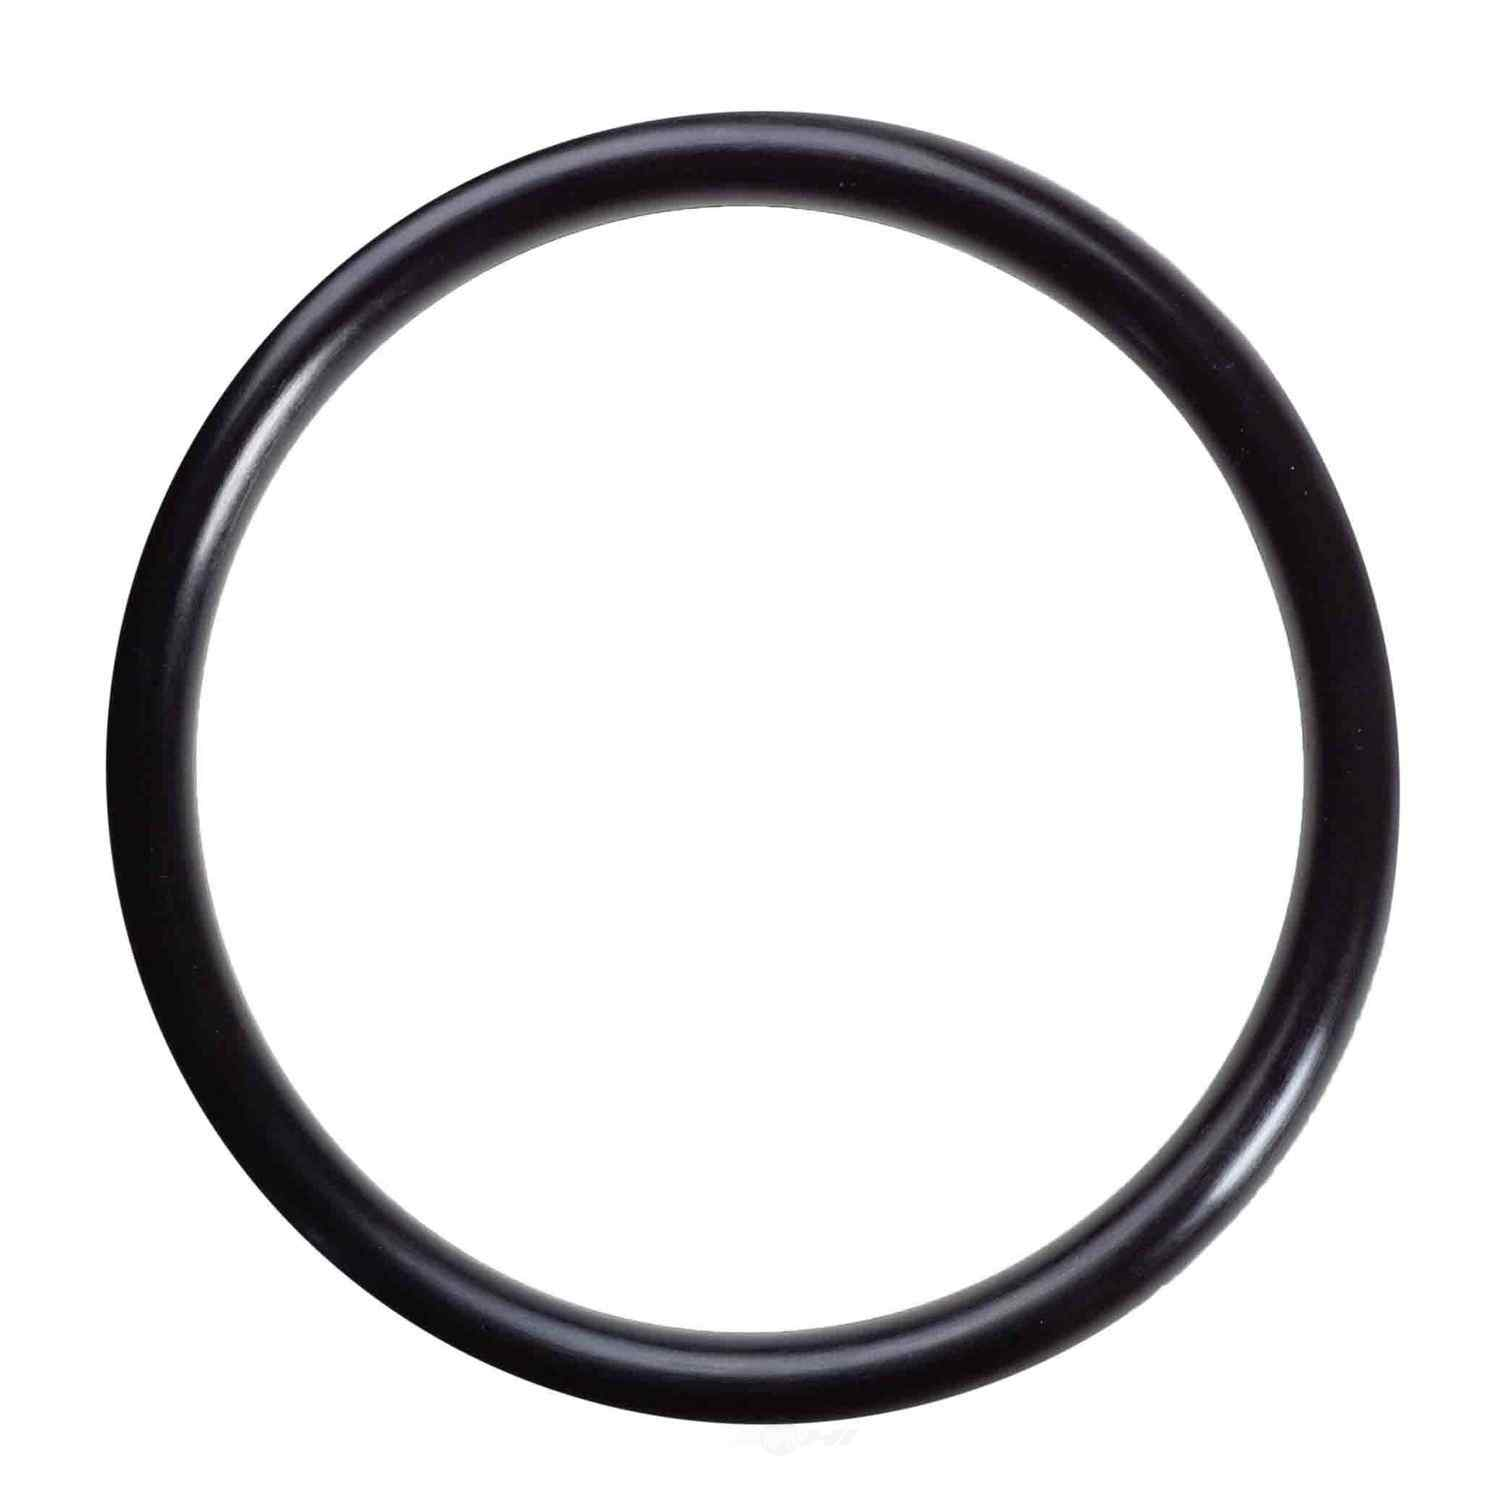 FELPRO - Engine Oil Filter Mounting O-Ring - FEL 412